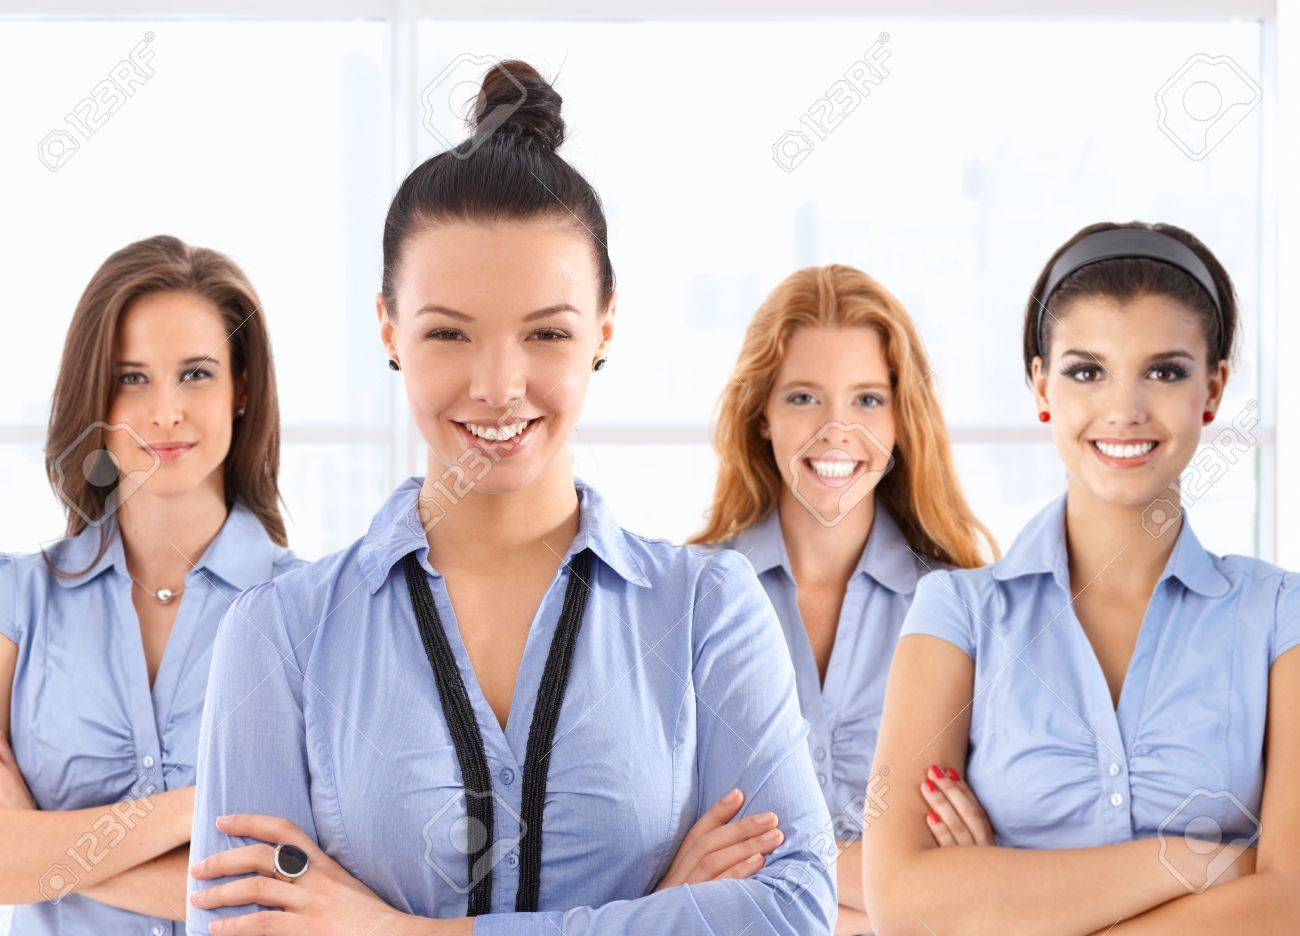 Team portrait of attractive young female front office workers in blue uniform, looking at camera, smiling. Stock Photo - 17638919